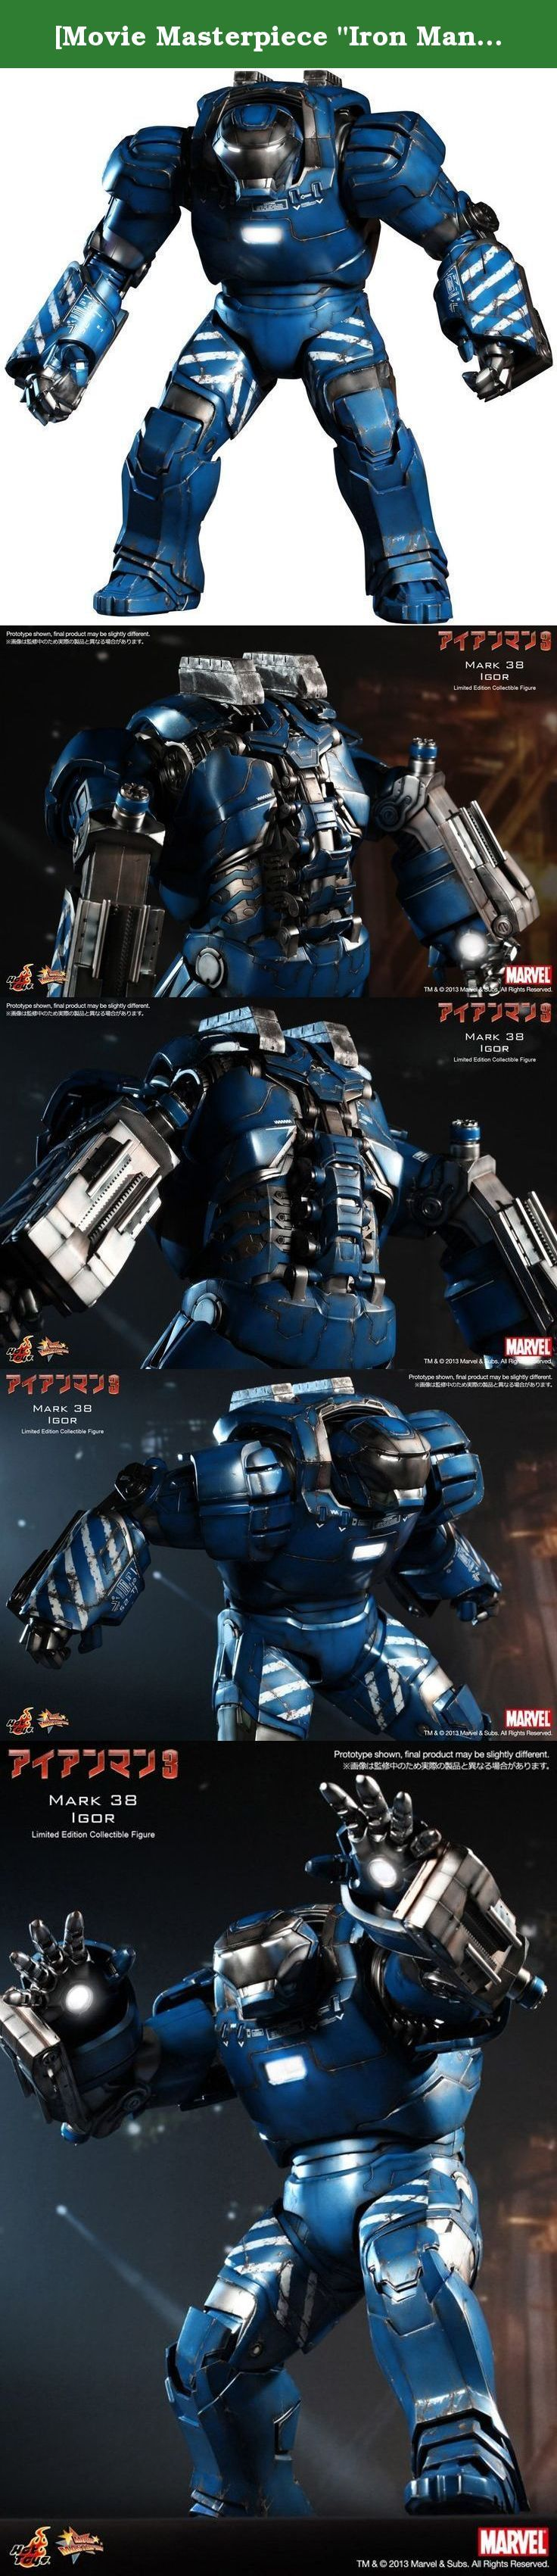 """[Movie Masterpiece """"Iron Man 3"""" 1/6 Scale Action Figure Iron Man Mark 38 (Igor) (second shipment). Scale 1/6 Yes battery use Yes, battery included The main material plastic body size: about 43 cm in height Target Gender: Boys From 15 years old: Age Battery Type: button battery use Scale 1/6 Yes battery use Yes, battery included The main plastic material Hot Toys in """"Movie Masterpiece"""" series, the new Power Suit action blockbuster movie of the Marvel """"Iron Man 3"""" lineup. Iron Man mark 38..."""